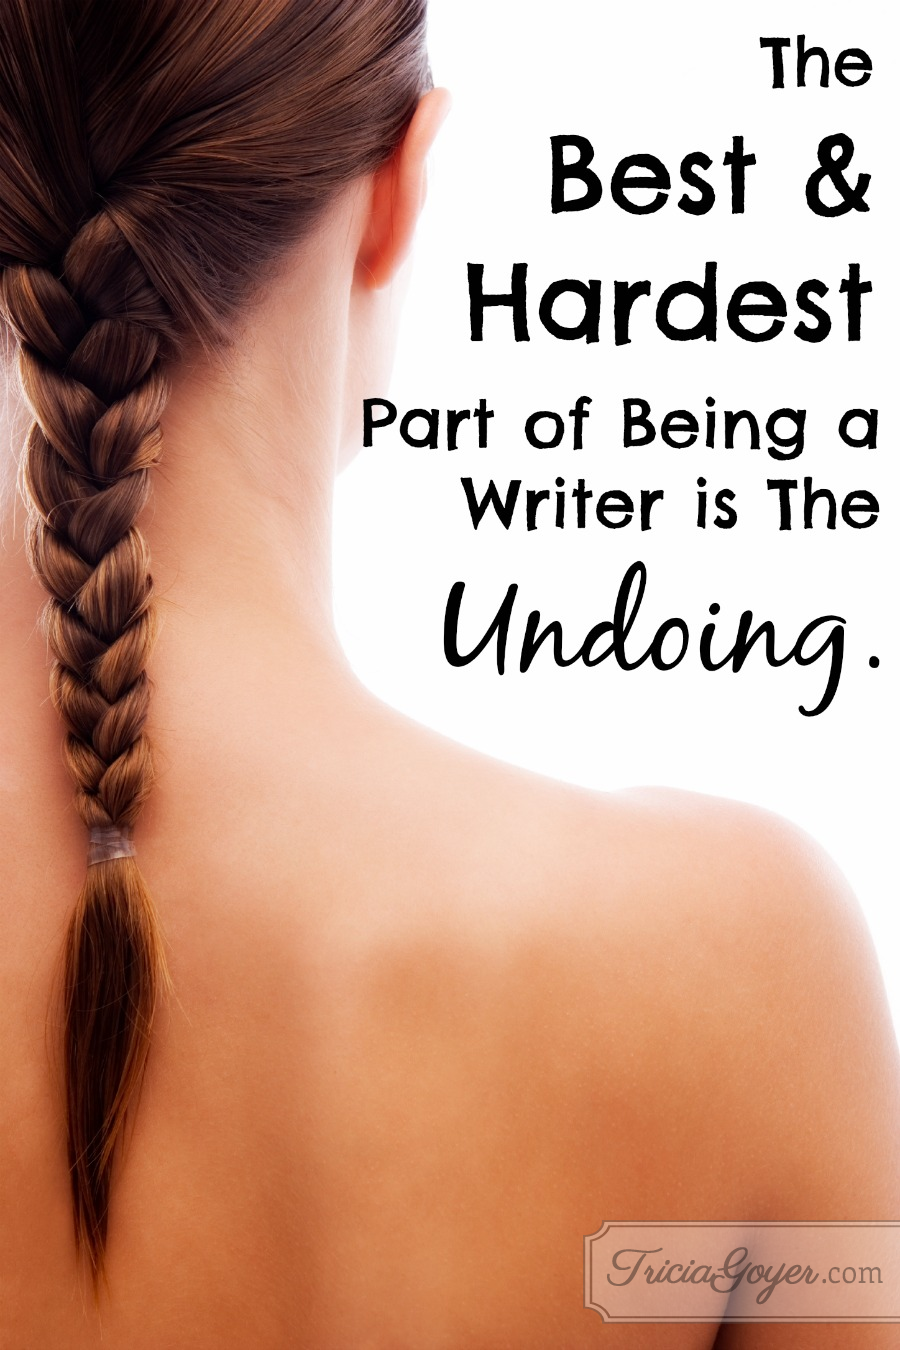 The Best and Hardest Part of Being a Writer is The Undoing. - TriciaGoyer.com